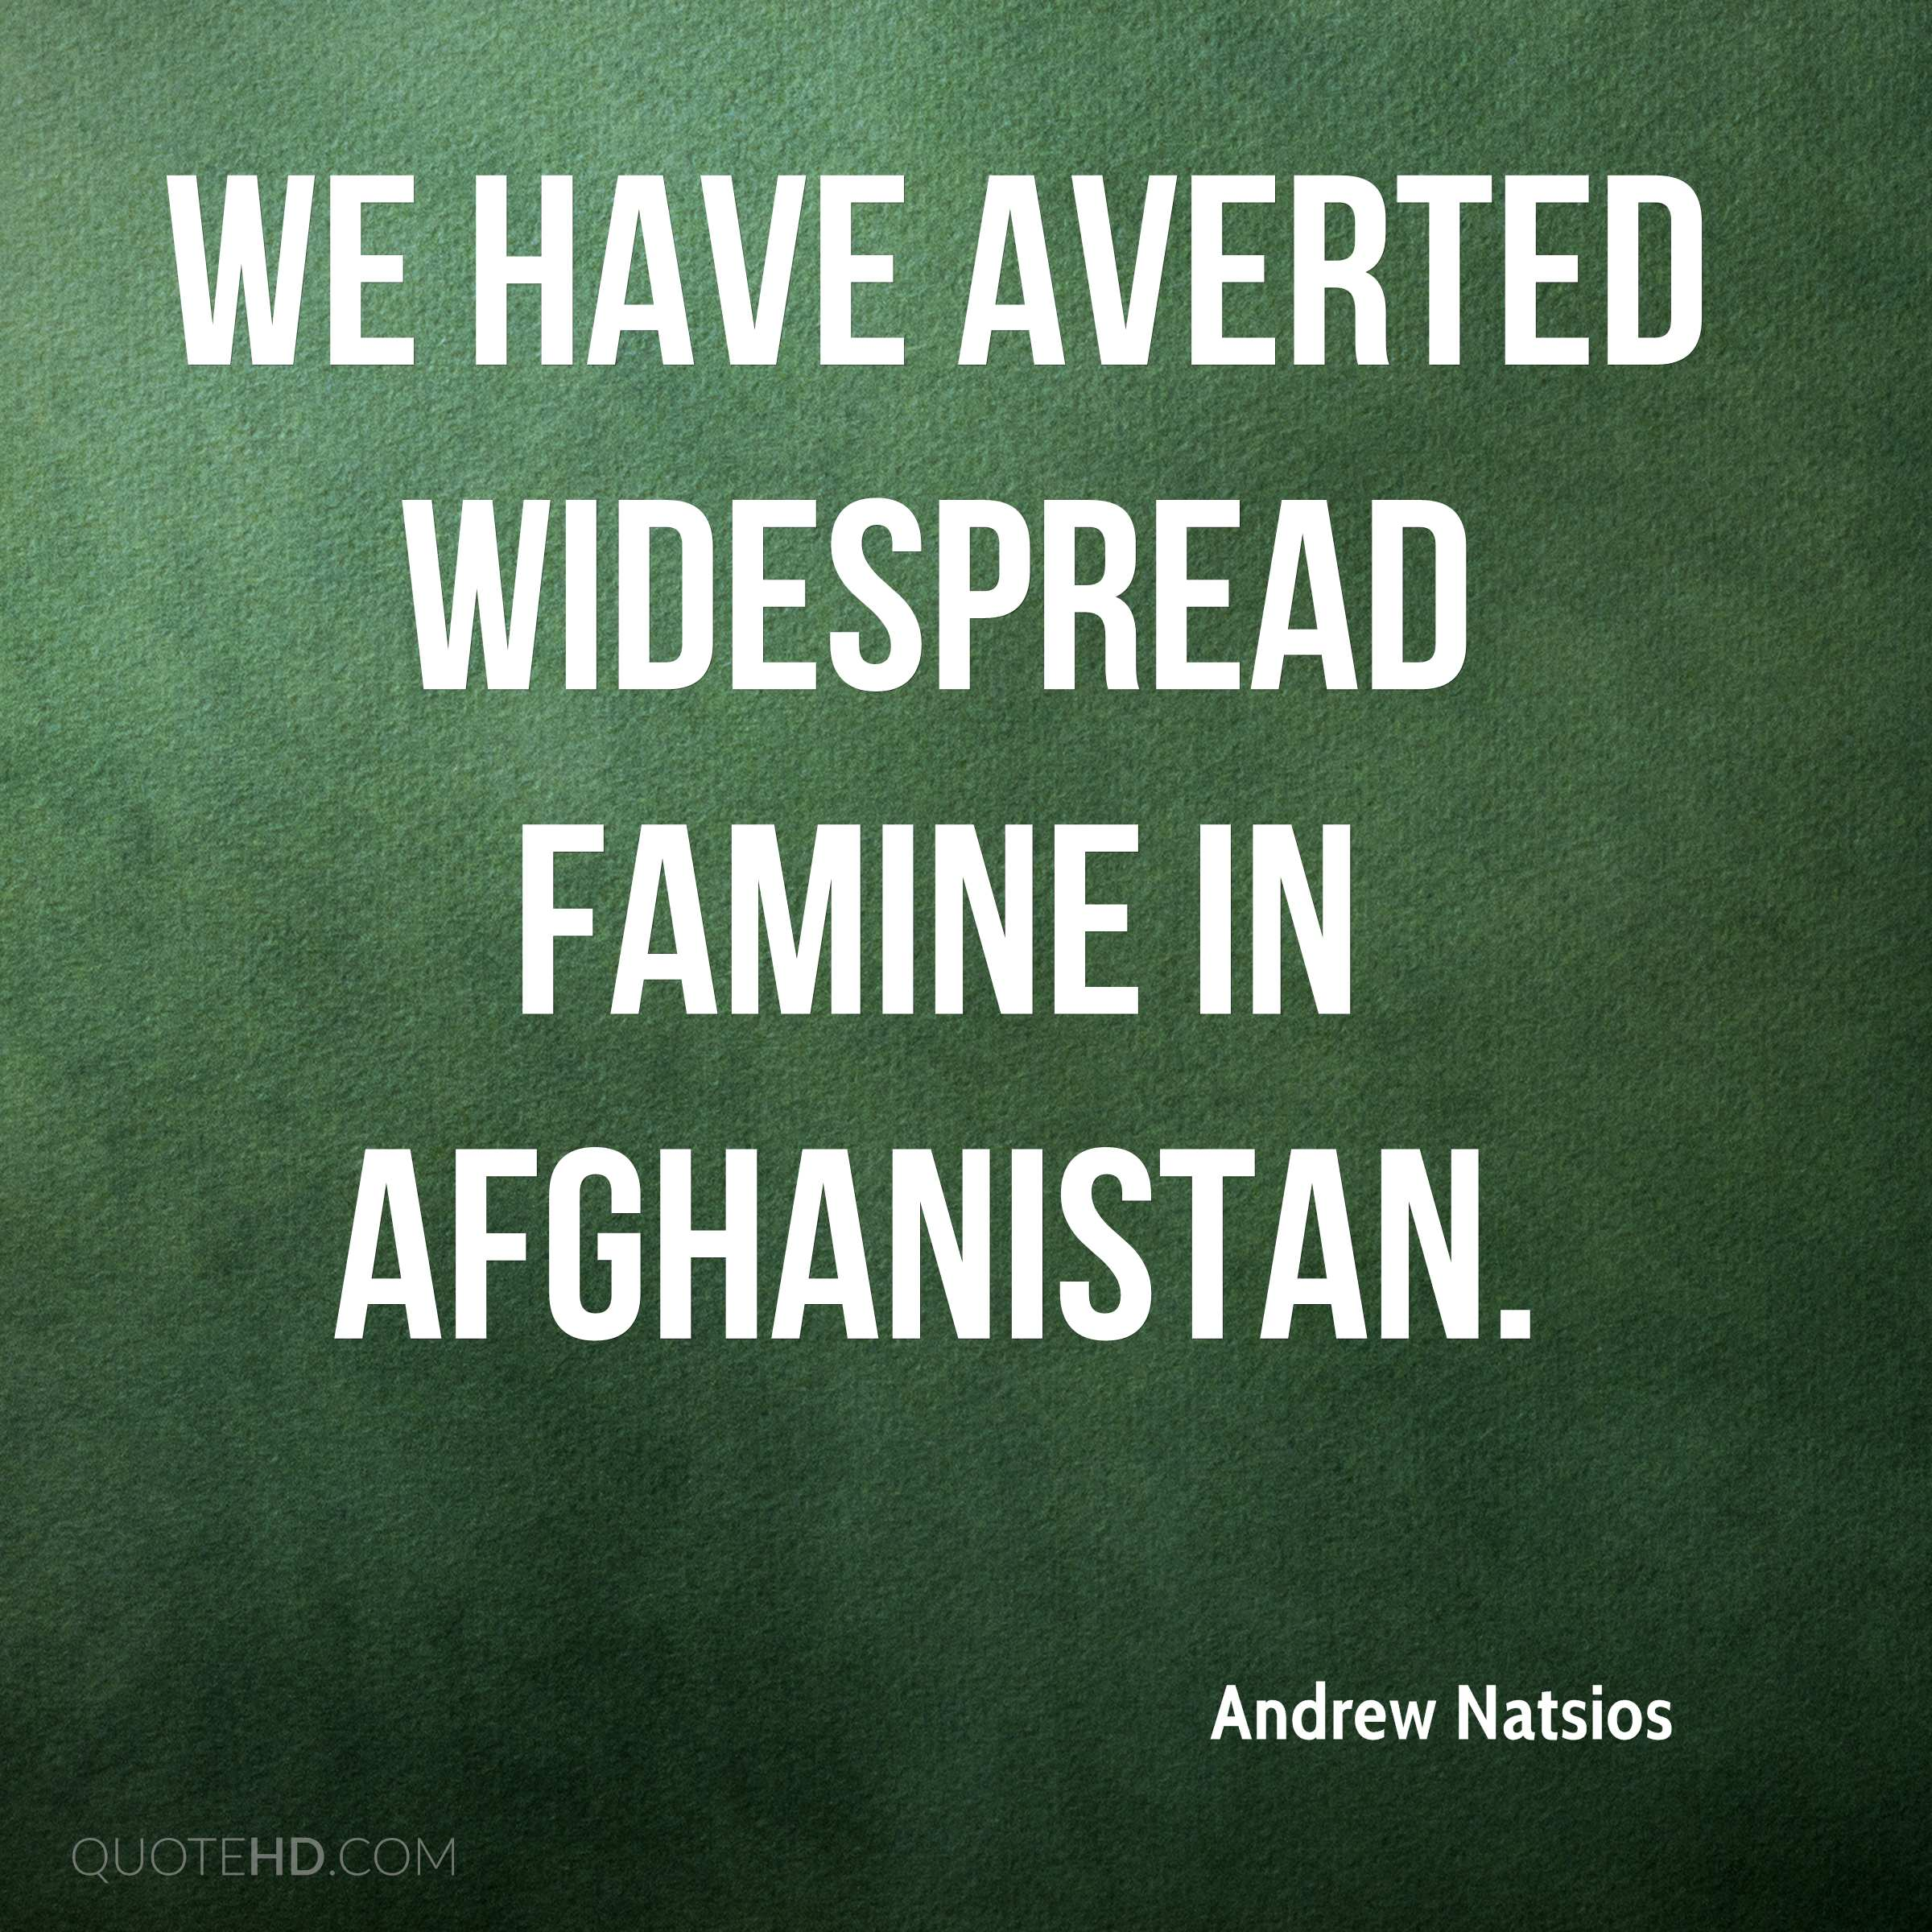 We have averted widespread famine in Afghanistan.